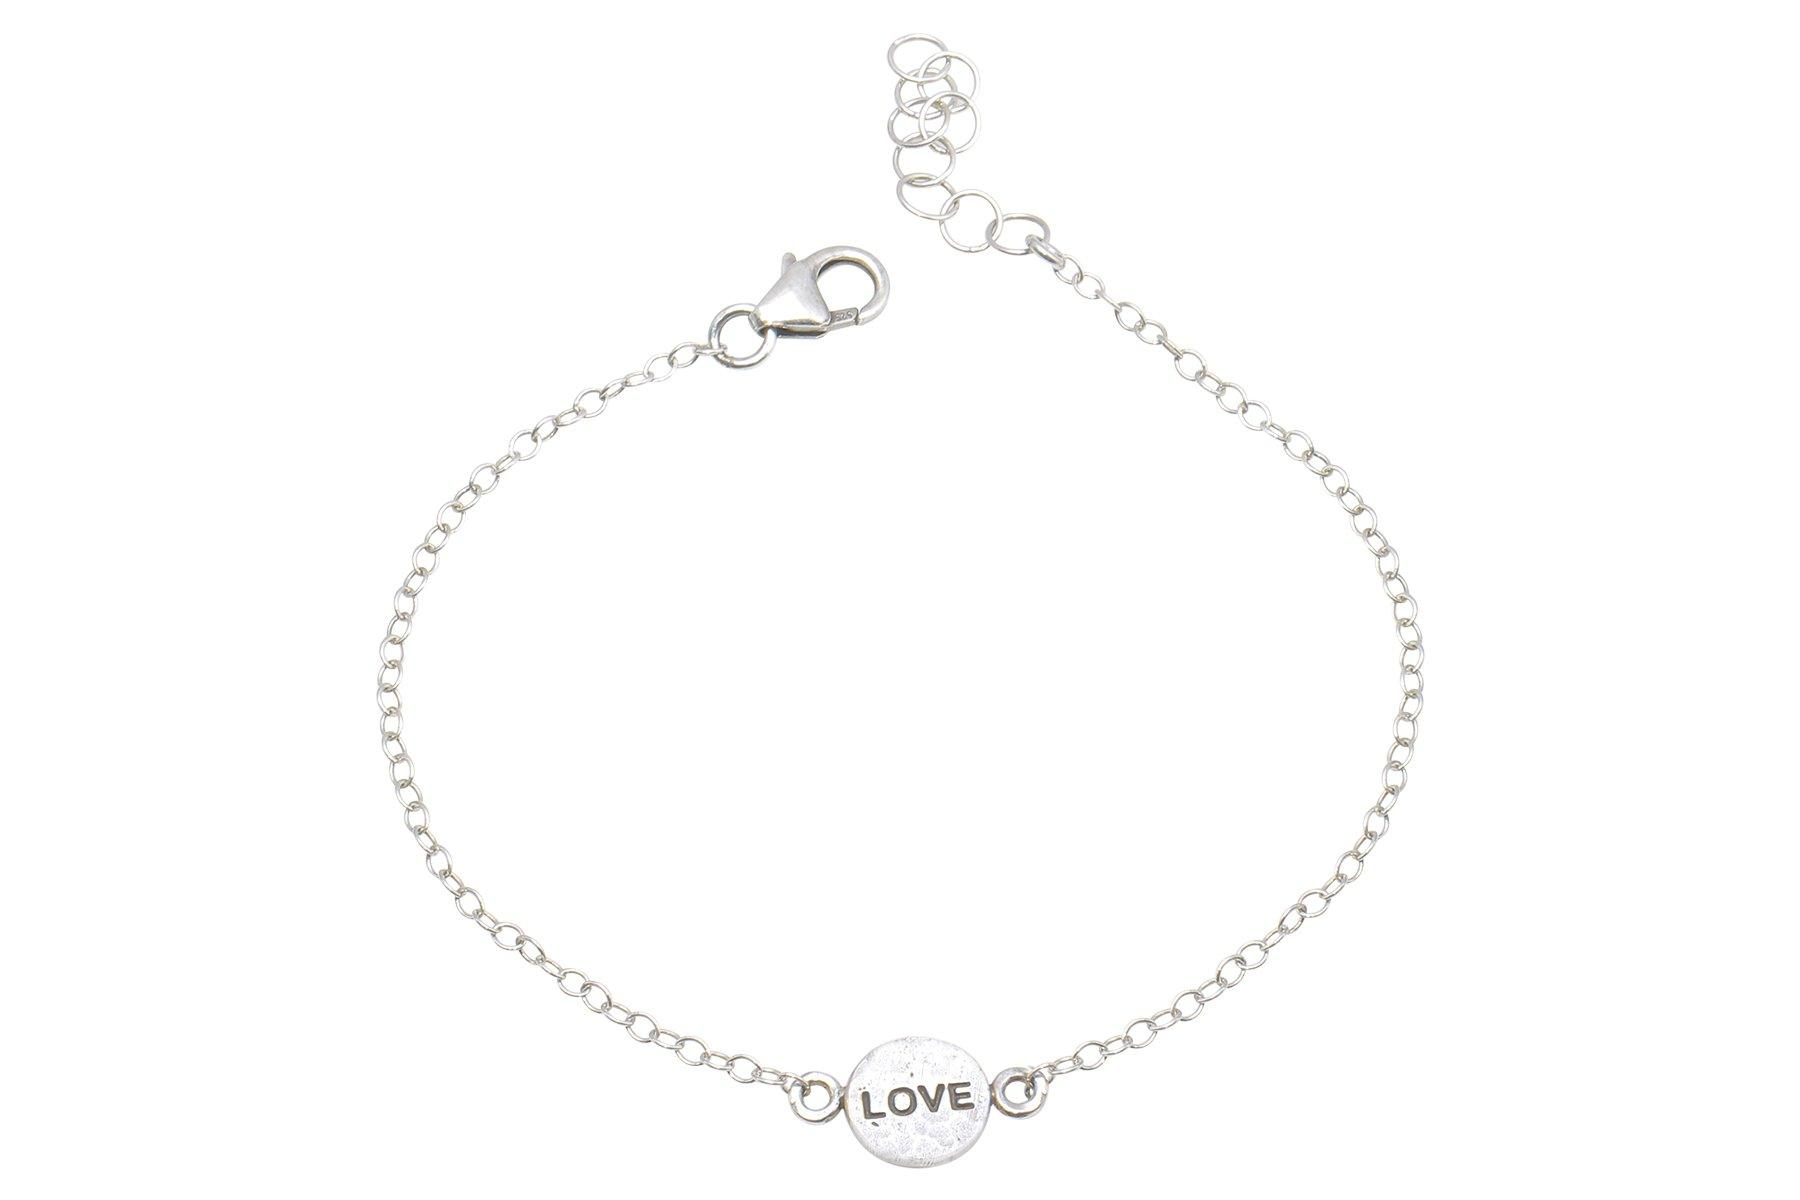 Say Something Love sterling silver charm bracelet - Amanda K Lockrow